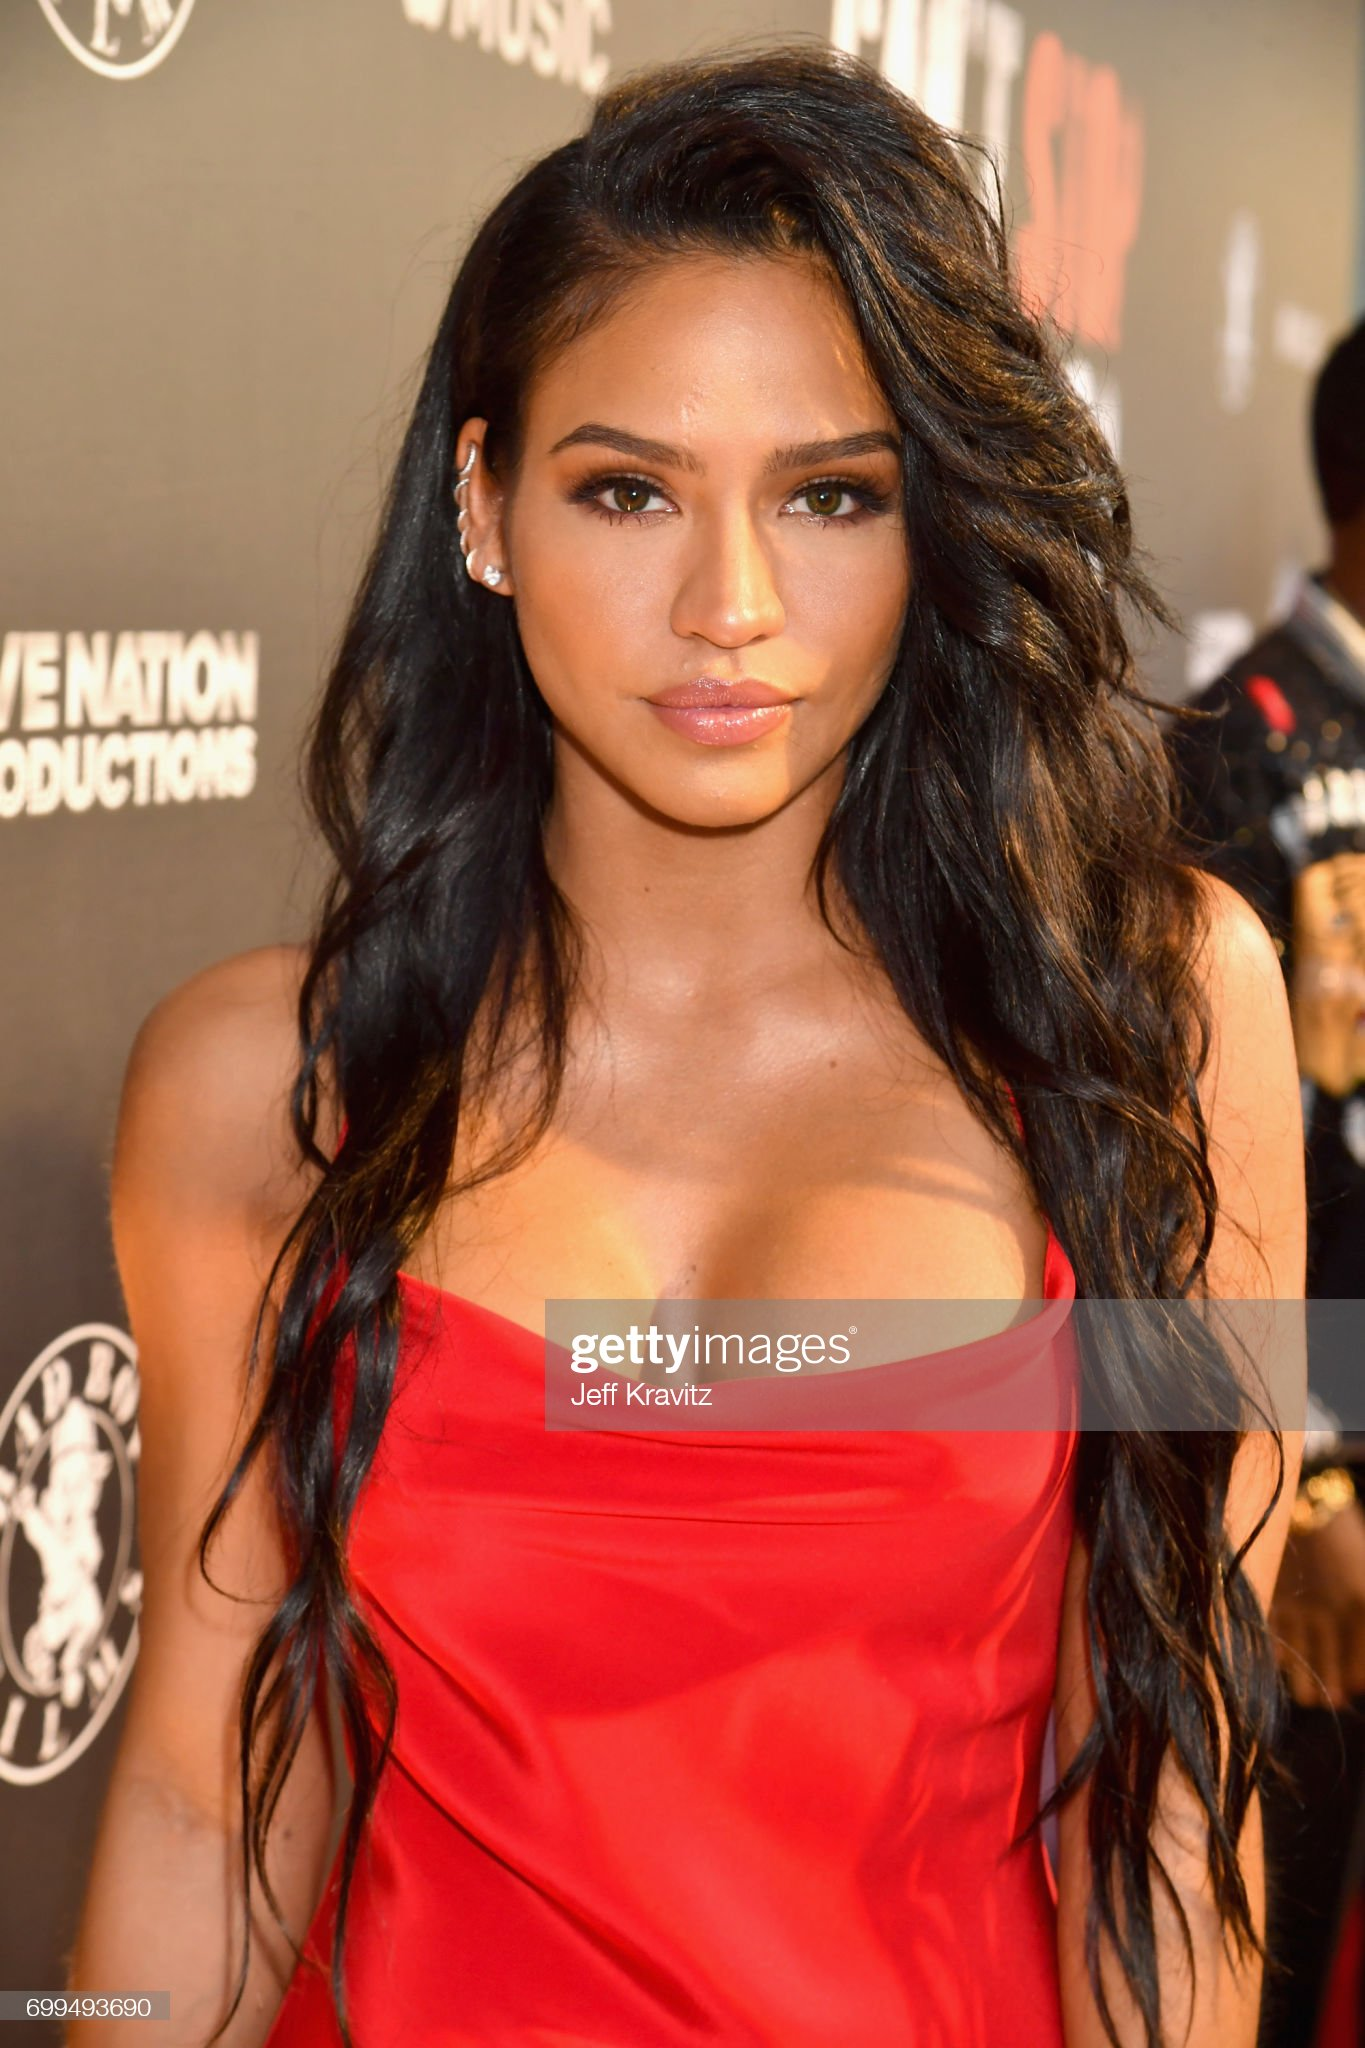 Top 80 Famosas Foroalturas - Página 2 Cassie-ventura-attends-the-los-angeles-premiere-of-apple-musics-cant-picture-id699493690?s=2048x2048